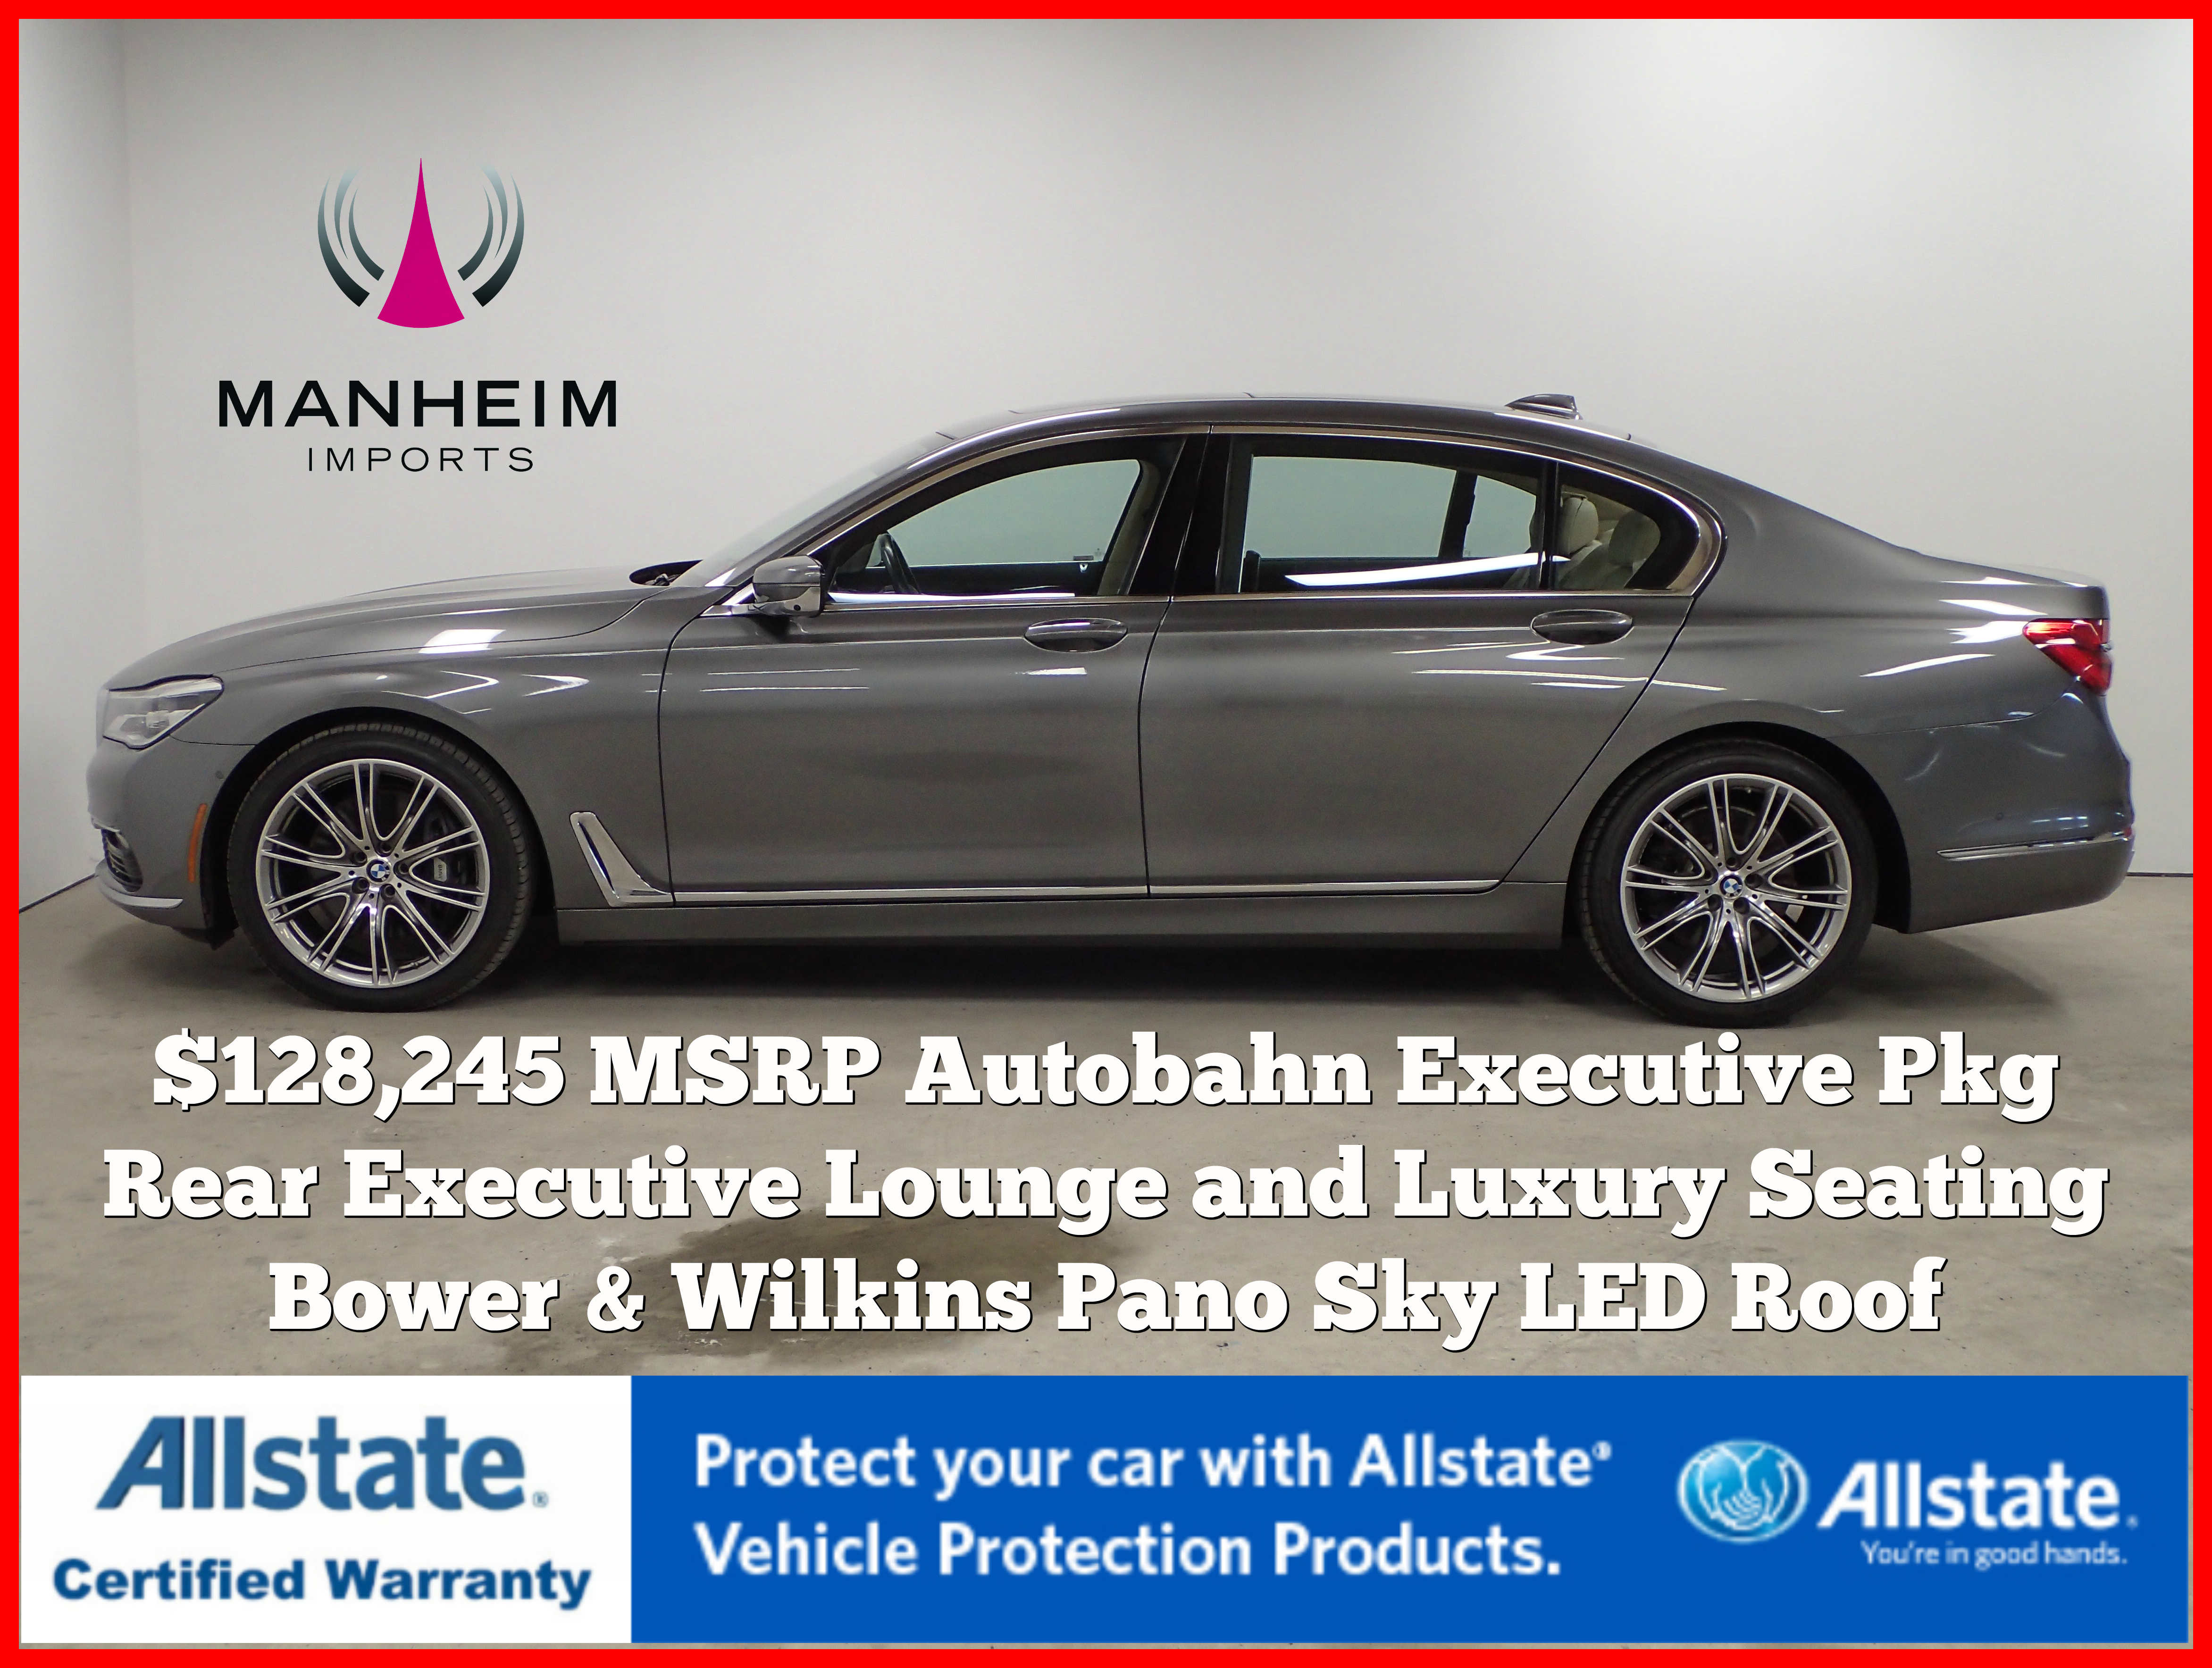 Pre Owned 2016 Bmw 750i Xdrive Autobahn 128 245 Msrp